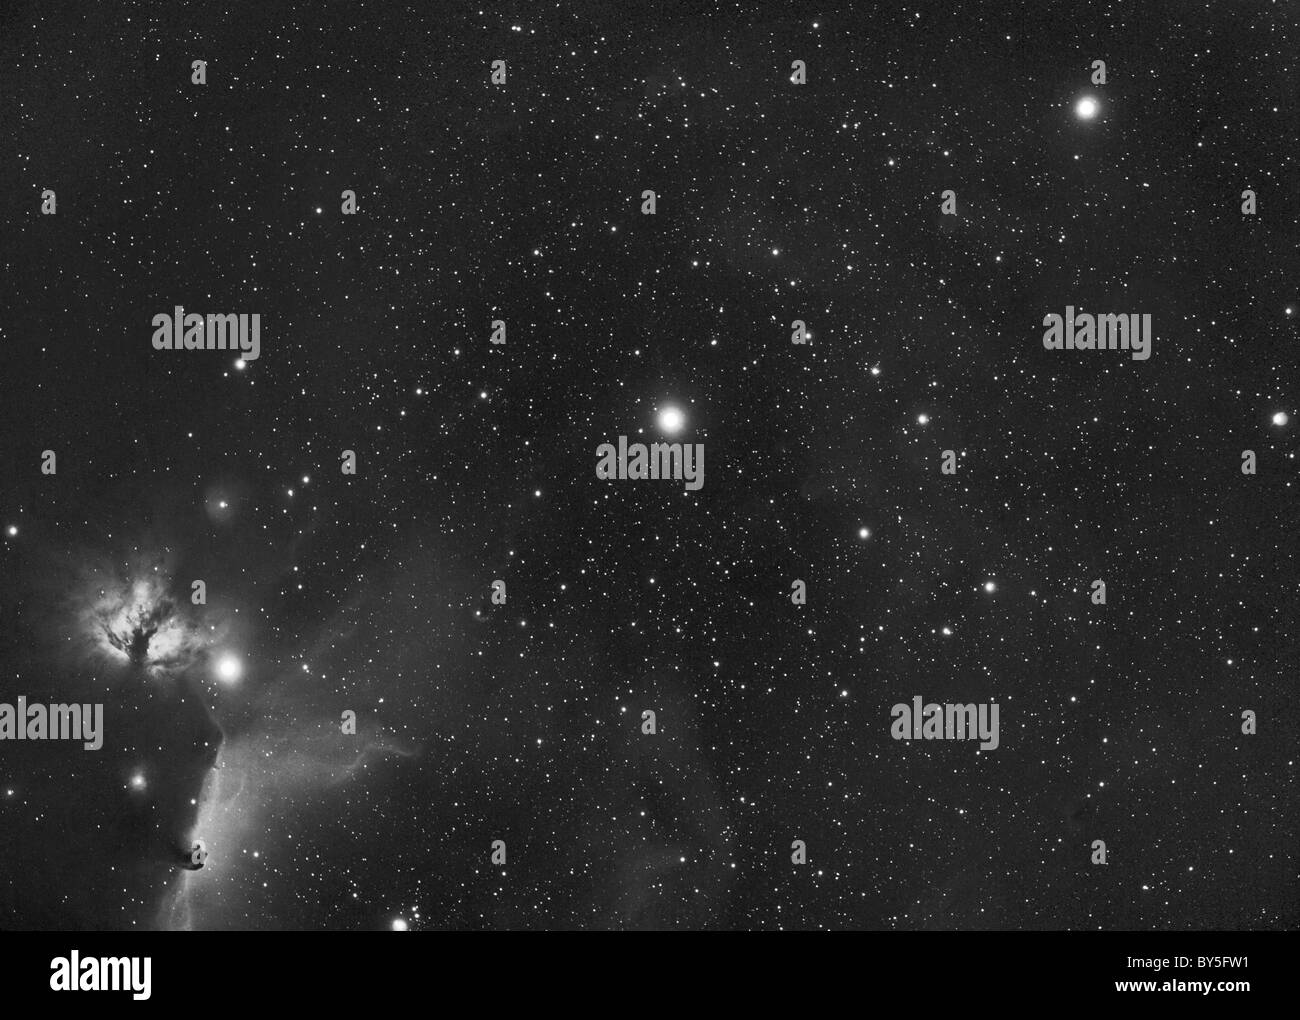 the-stars-of-orions-belt-with-the-flame-